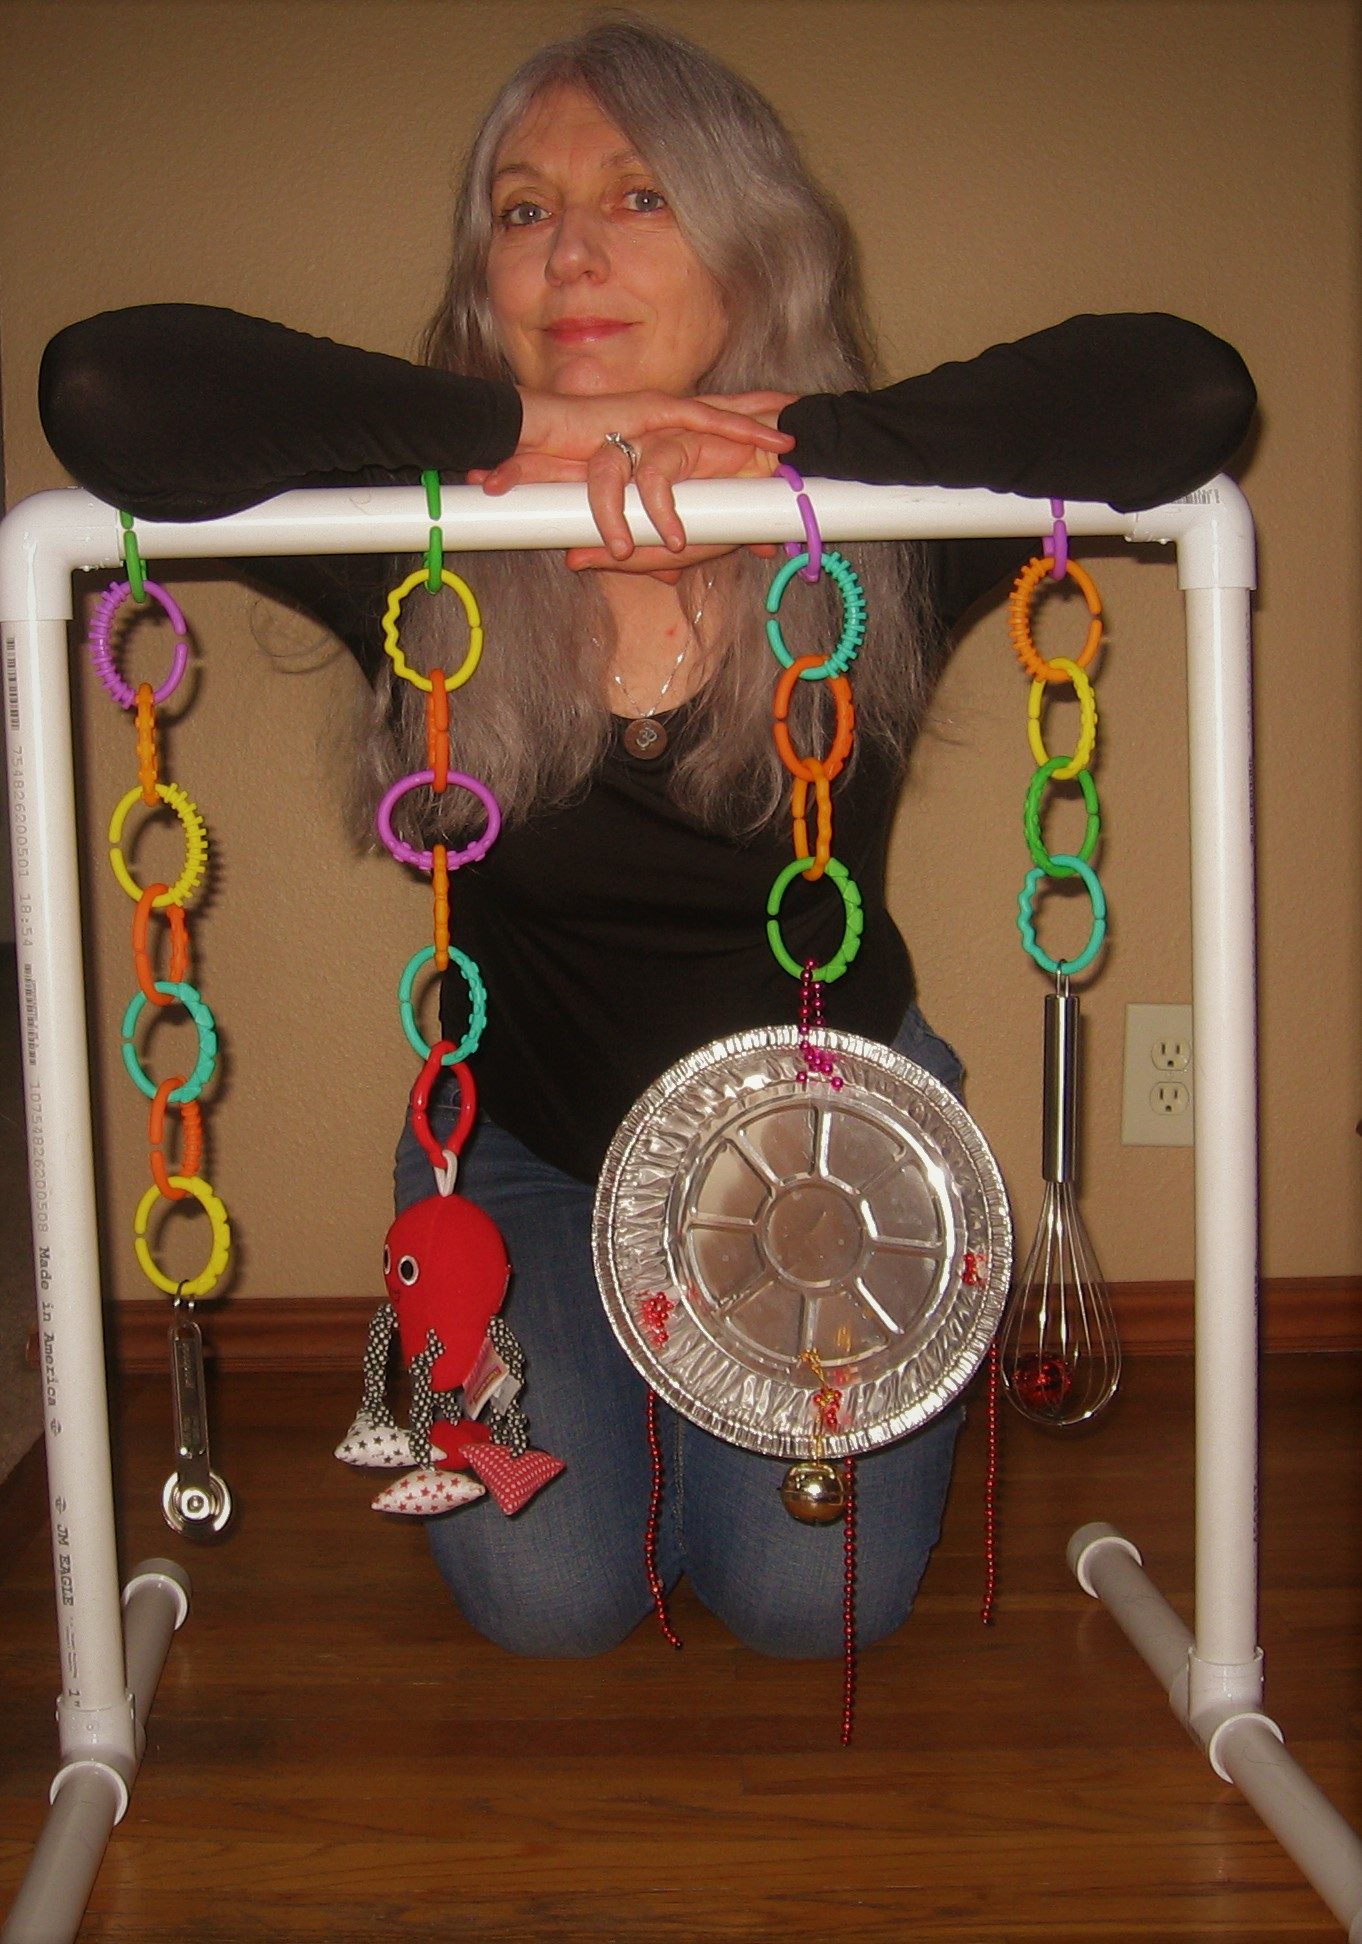 A woman is kneeling on a wood floor behind a homemade pvc pipe frame. She is leaning forward with her arms resting on the top of the frame. Hanging from it are four colored plastic chains. At the end of each chain is an object—a measuring spoon, a stuffed